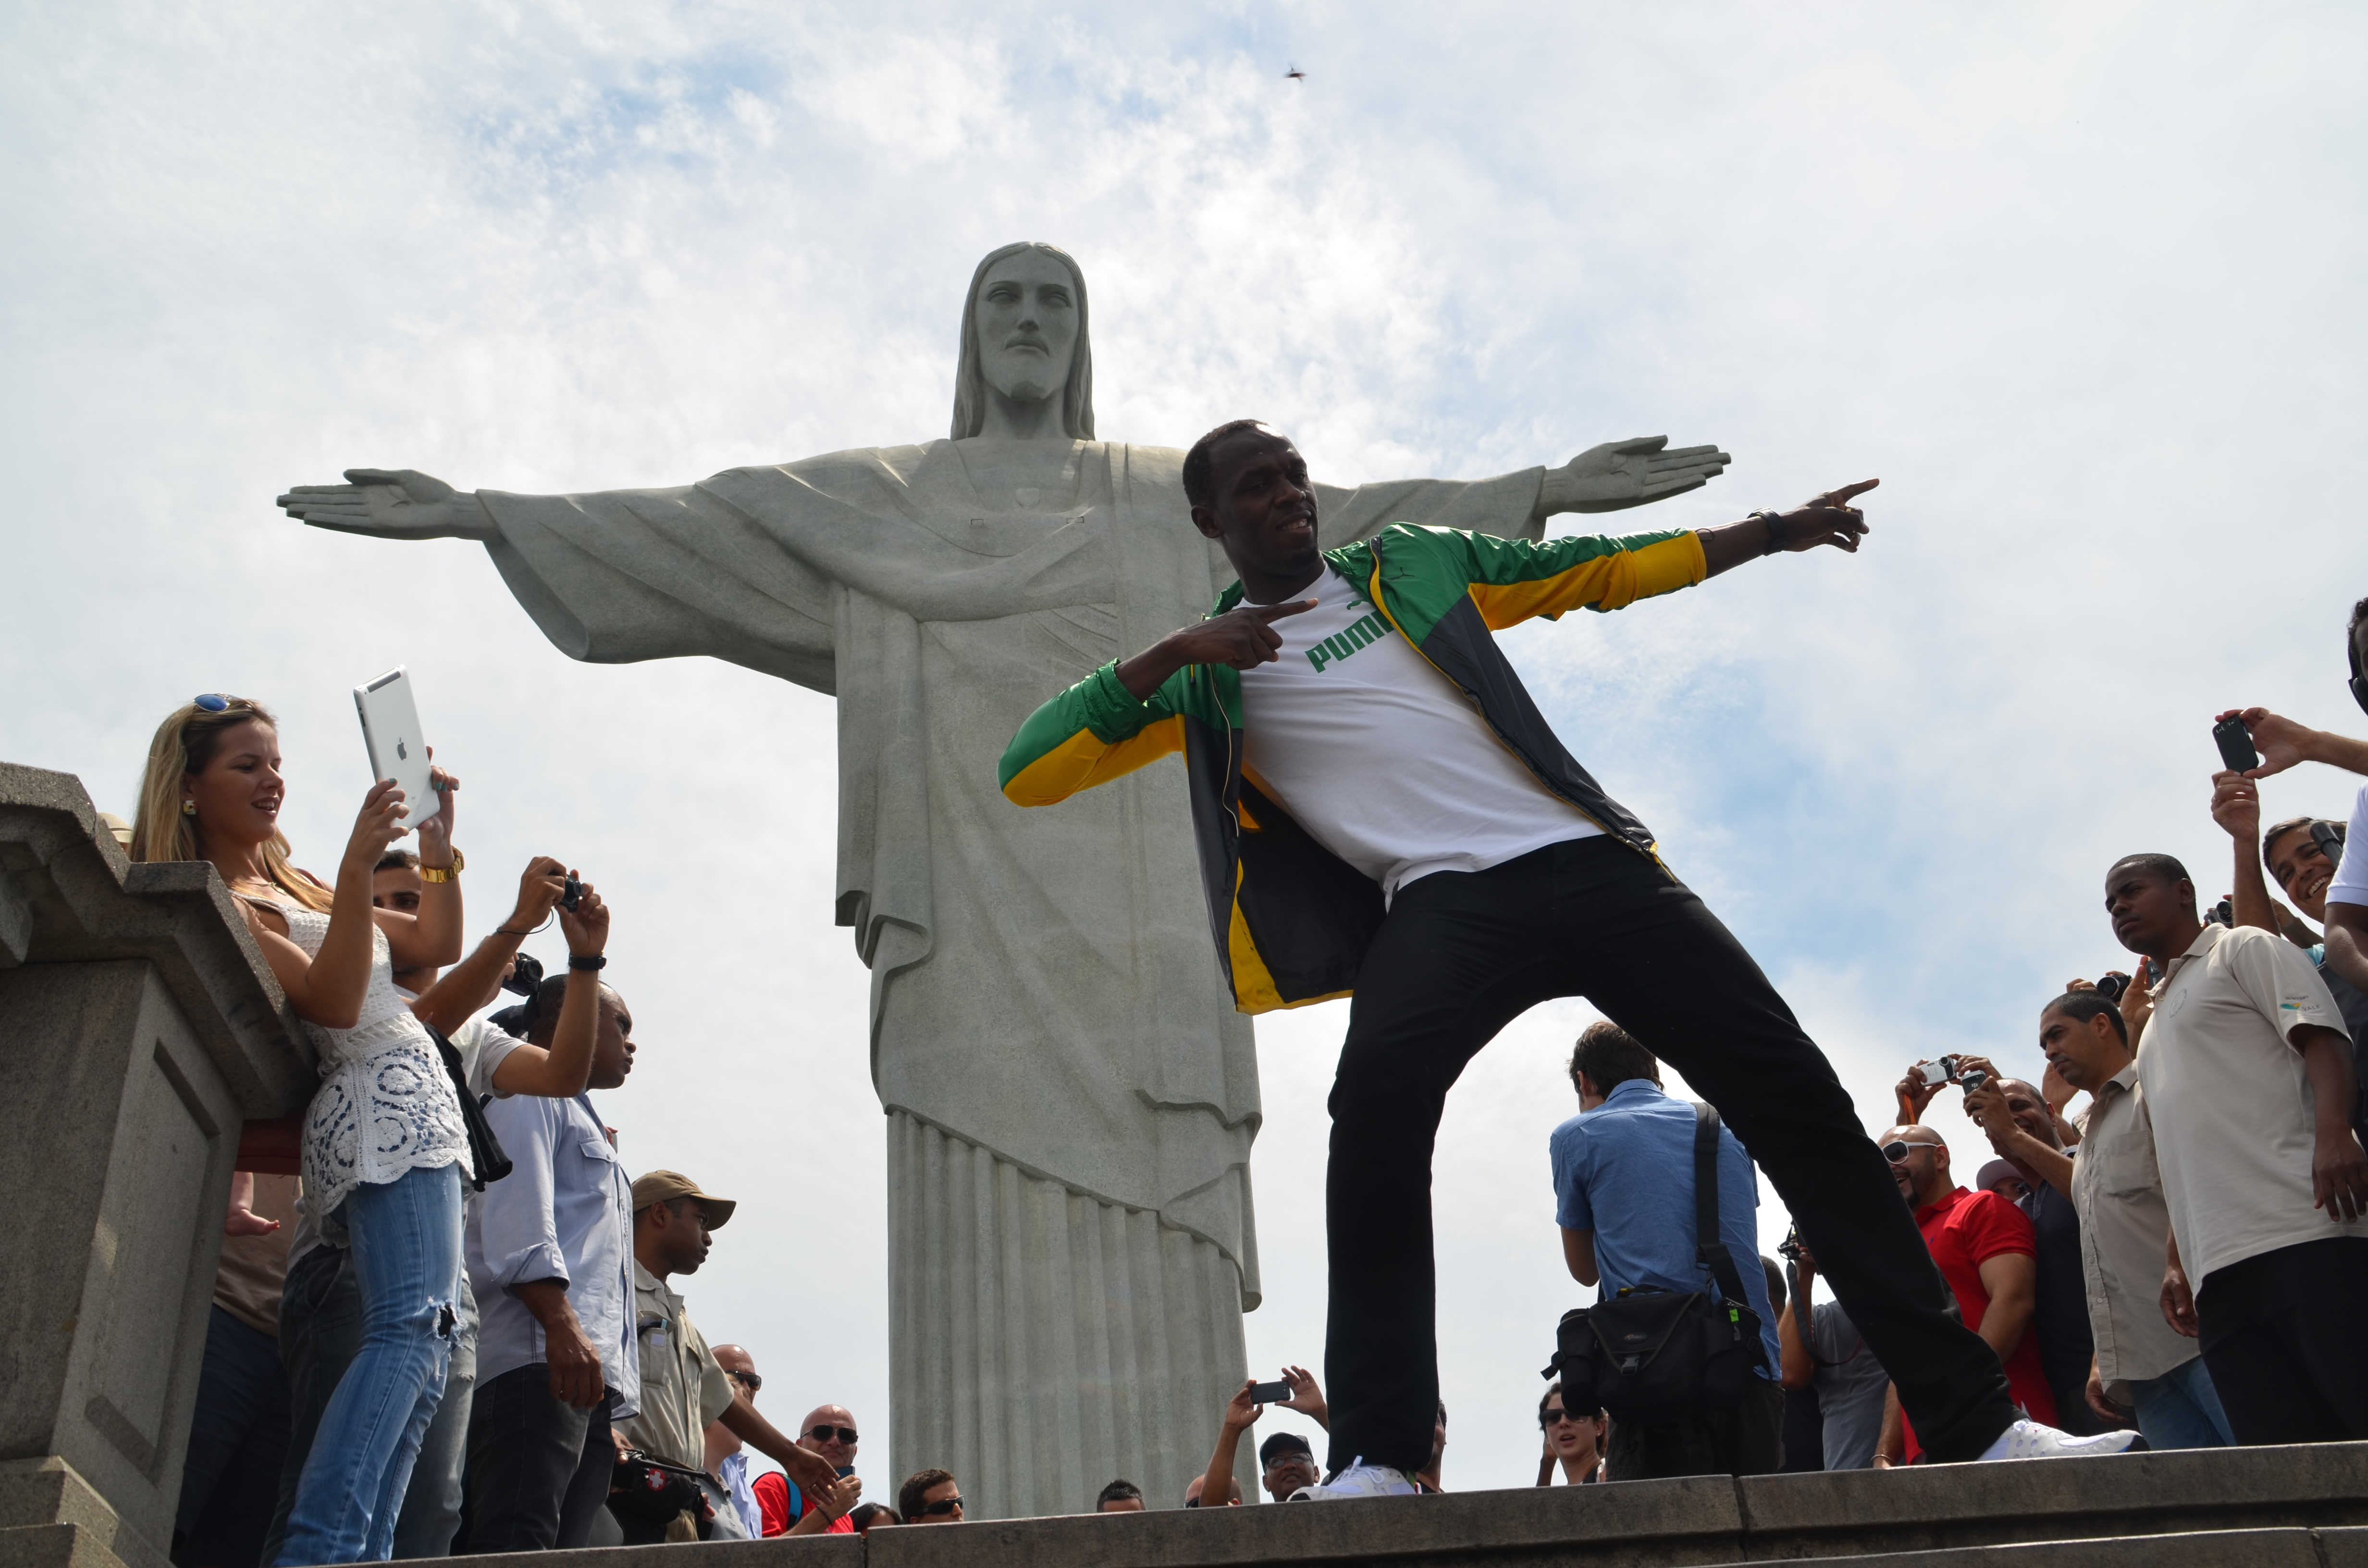 Usain nominated for 2013 Laureus World Sports Award